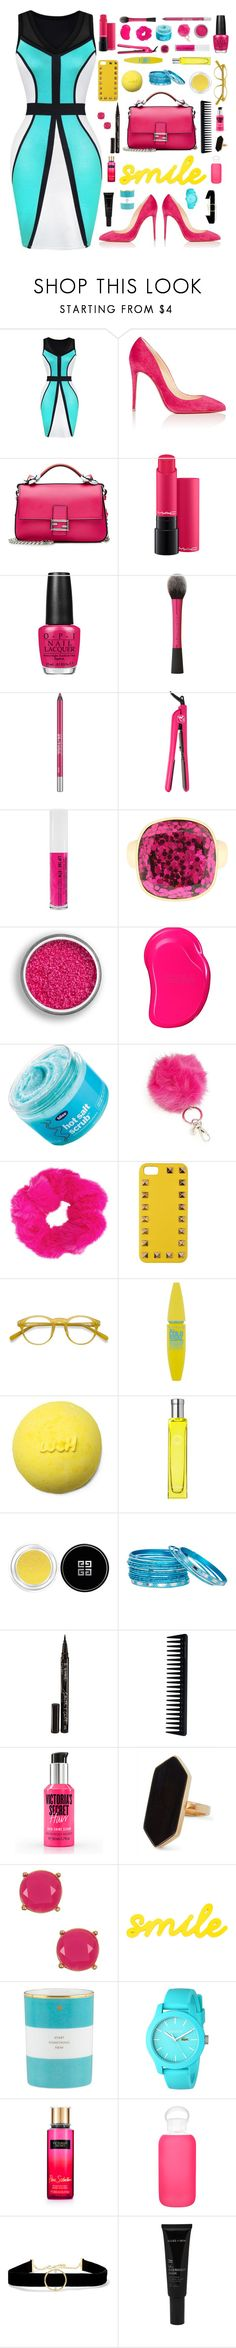 """""""Self Explanatory"""" by cocochaneljr ❤ liked on Polyvore featuring Christian Louboutin, Fendi, OPI, Urban Decay, Royale, Obsessive Compulsive Cosmetics, Liz Claiborne, Tangle Teezer, Bliss and Valentino"""